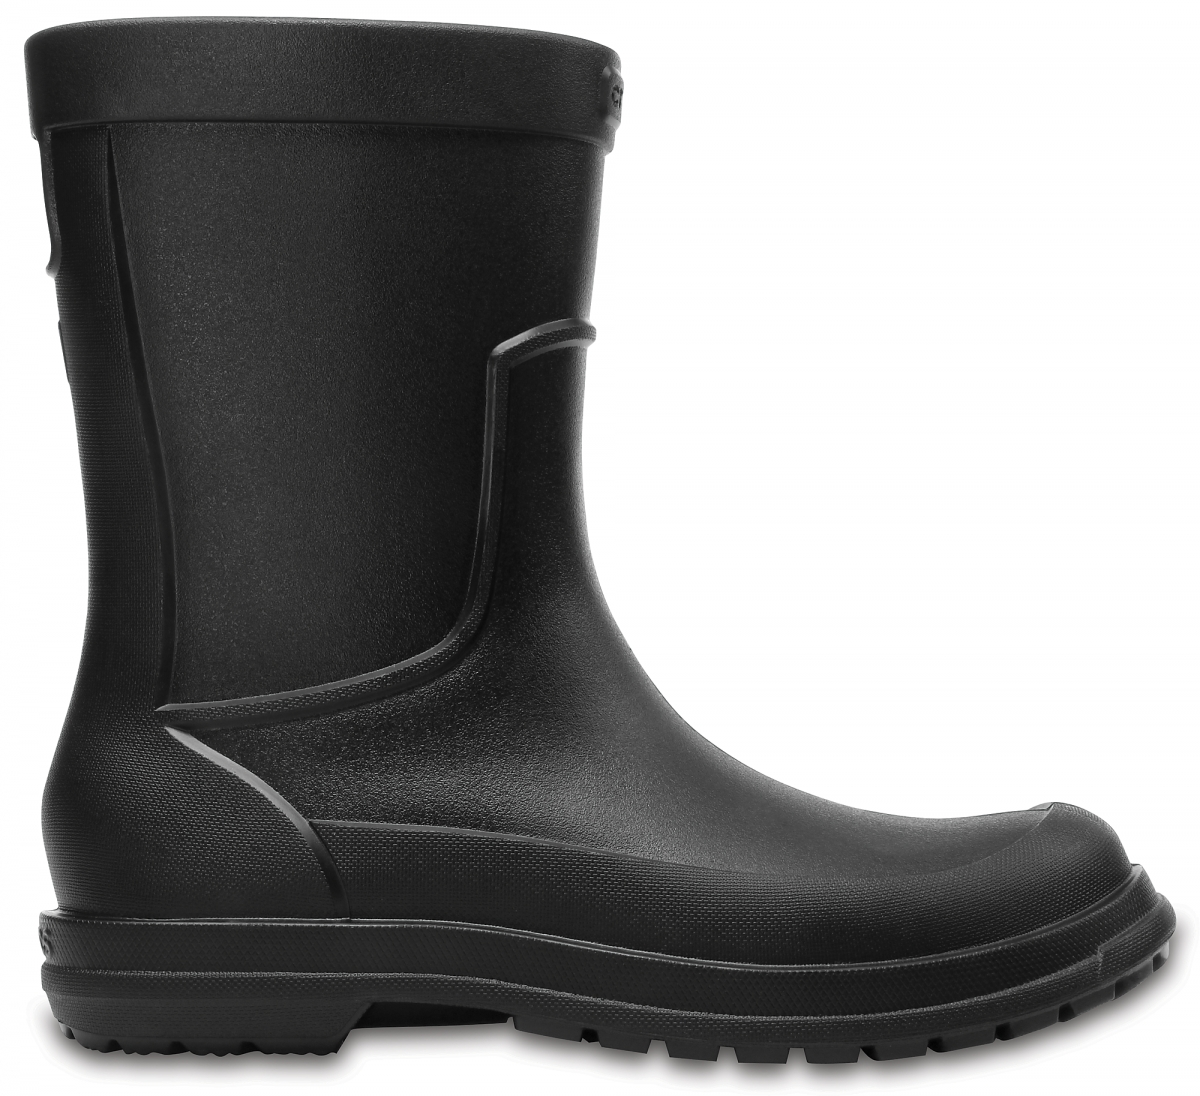 Crocs AllCast Rain Boot Men - Black, M8 (41-42)